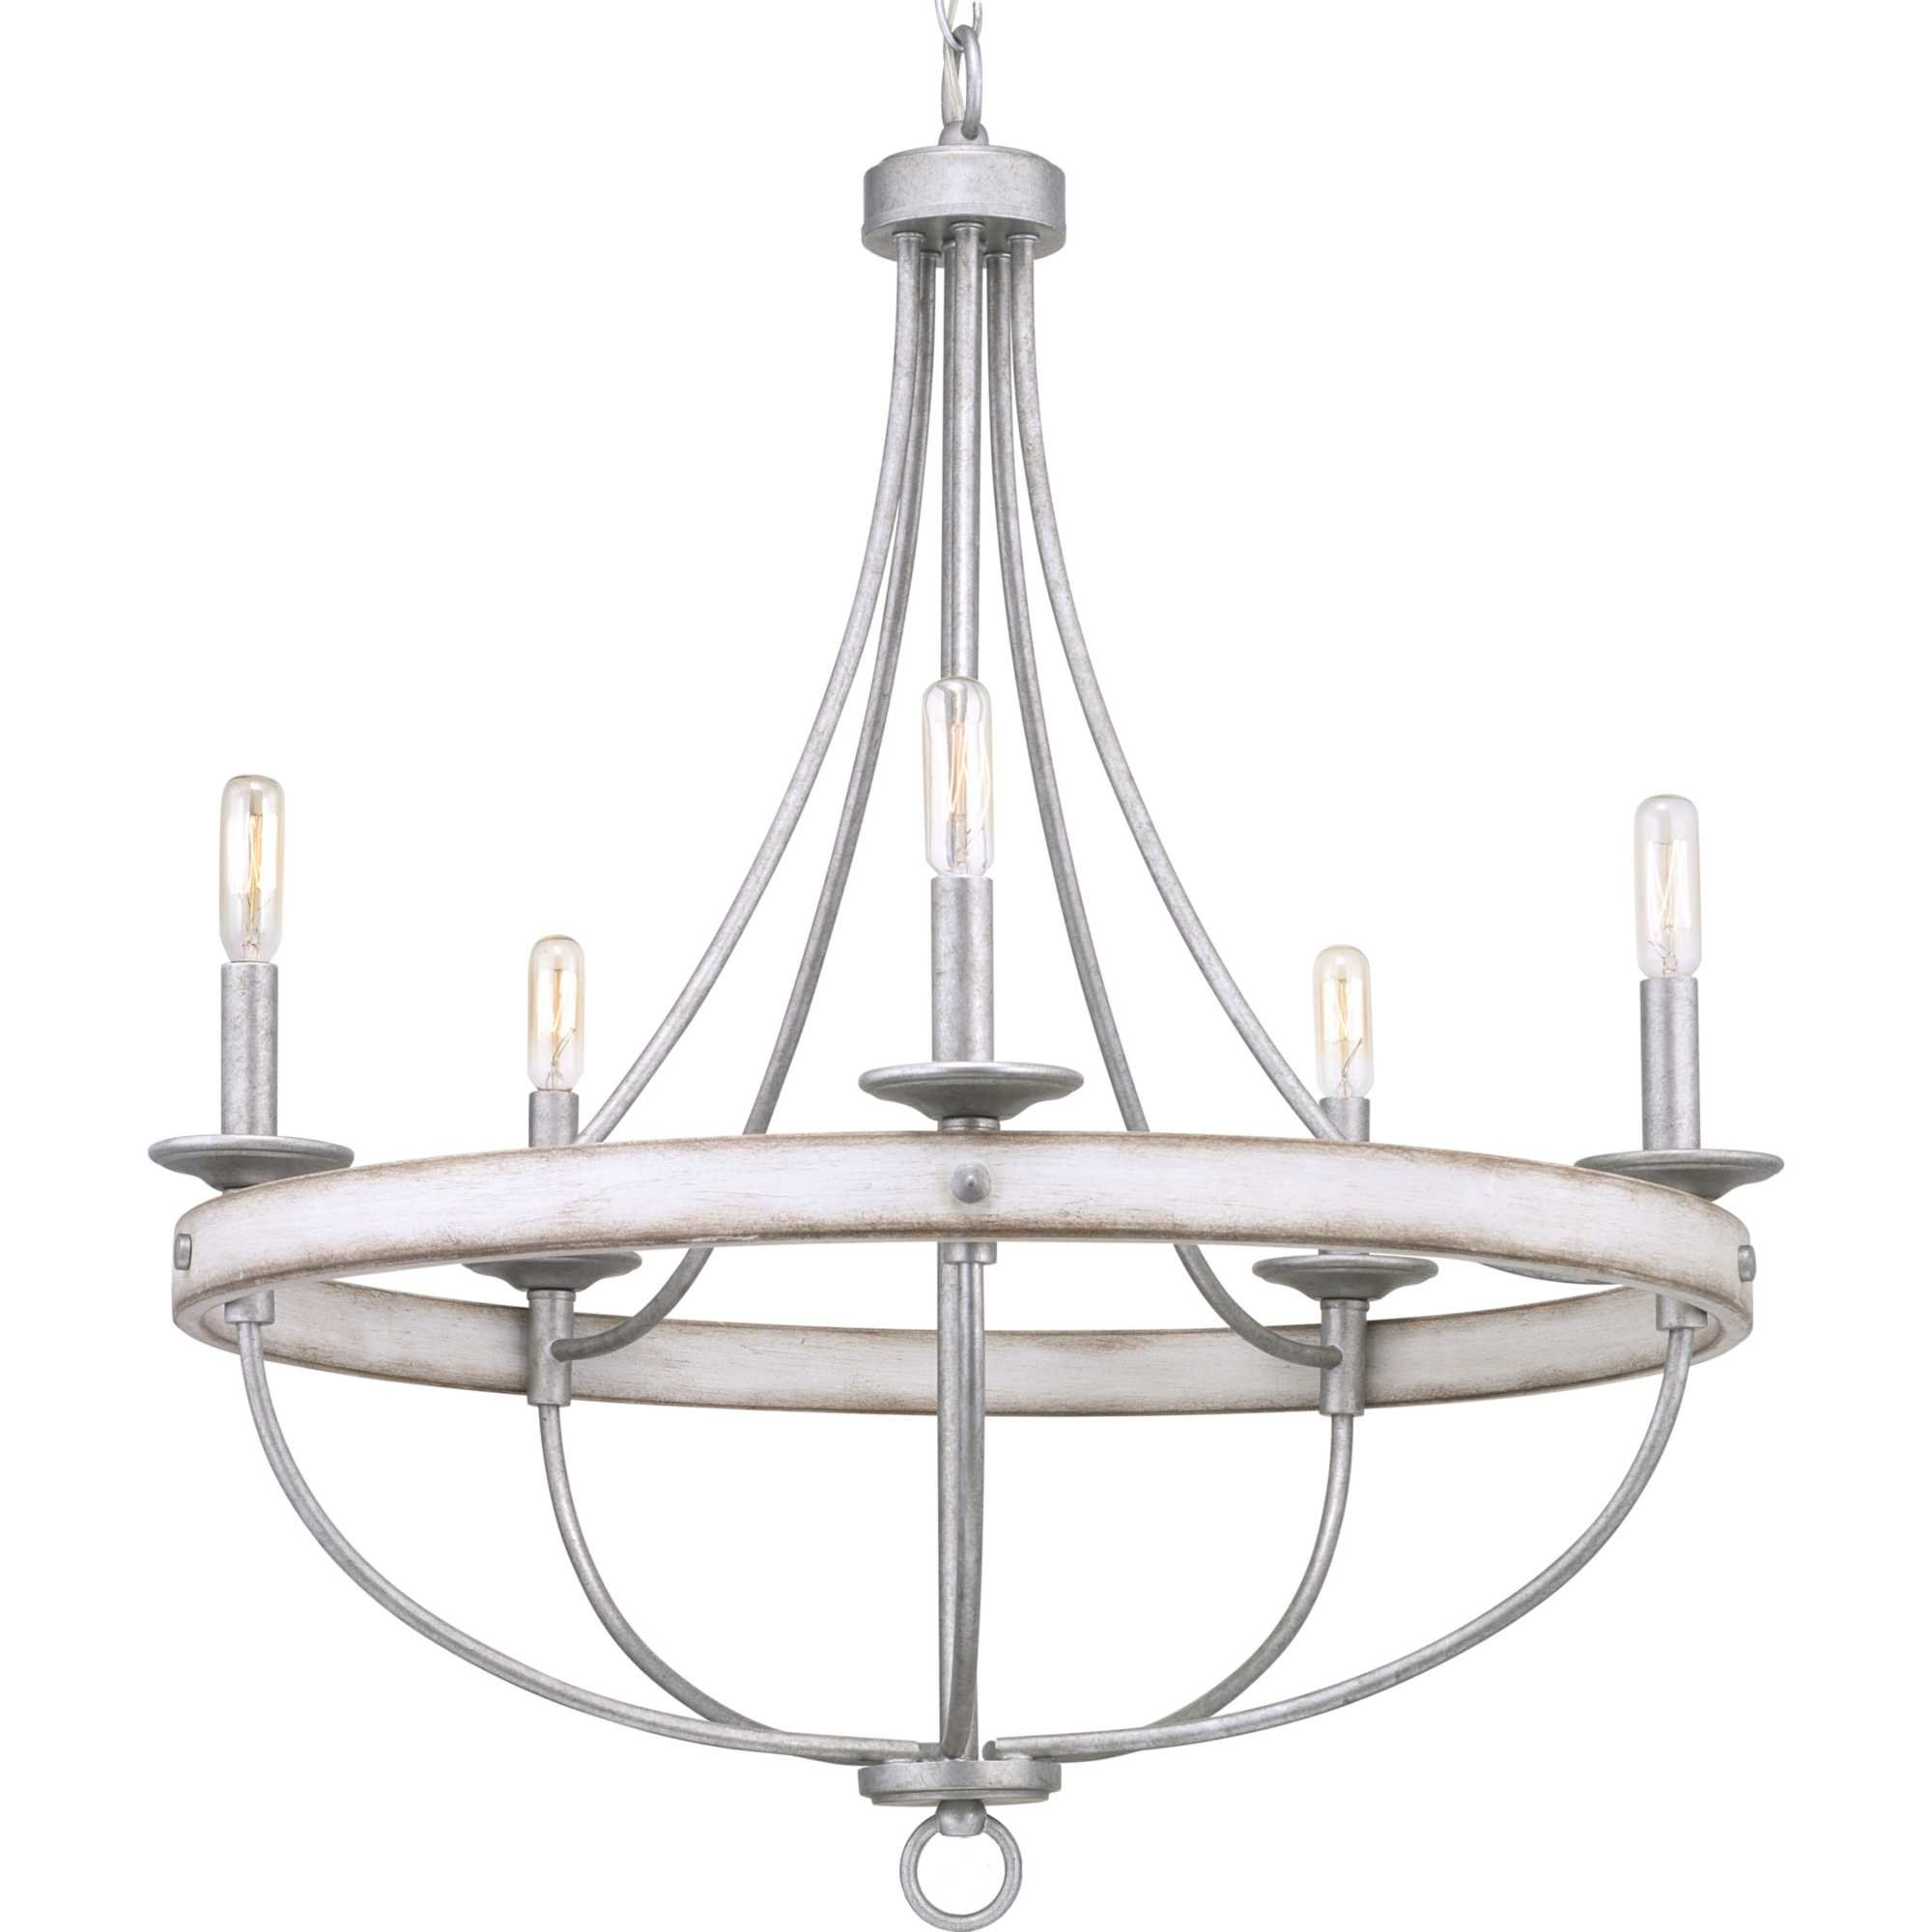 Emaria 5 Light Candle Style Chandelier Throughout Phifer 6 Light Empire Chandeliers (Gallery 29 of 30)